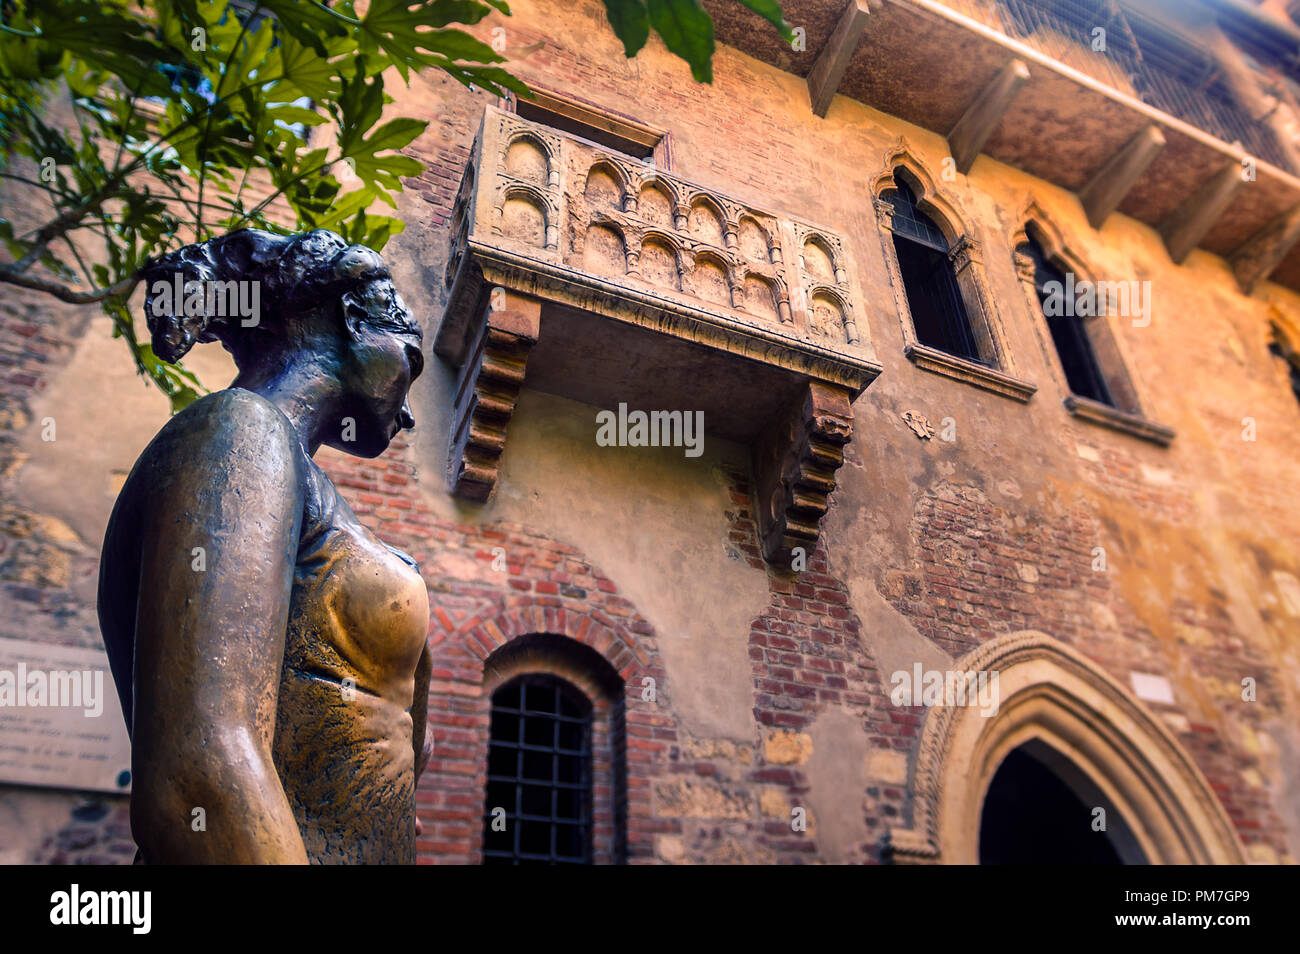 Juliet's Balcony in Verona, Italy - Stock Image